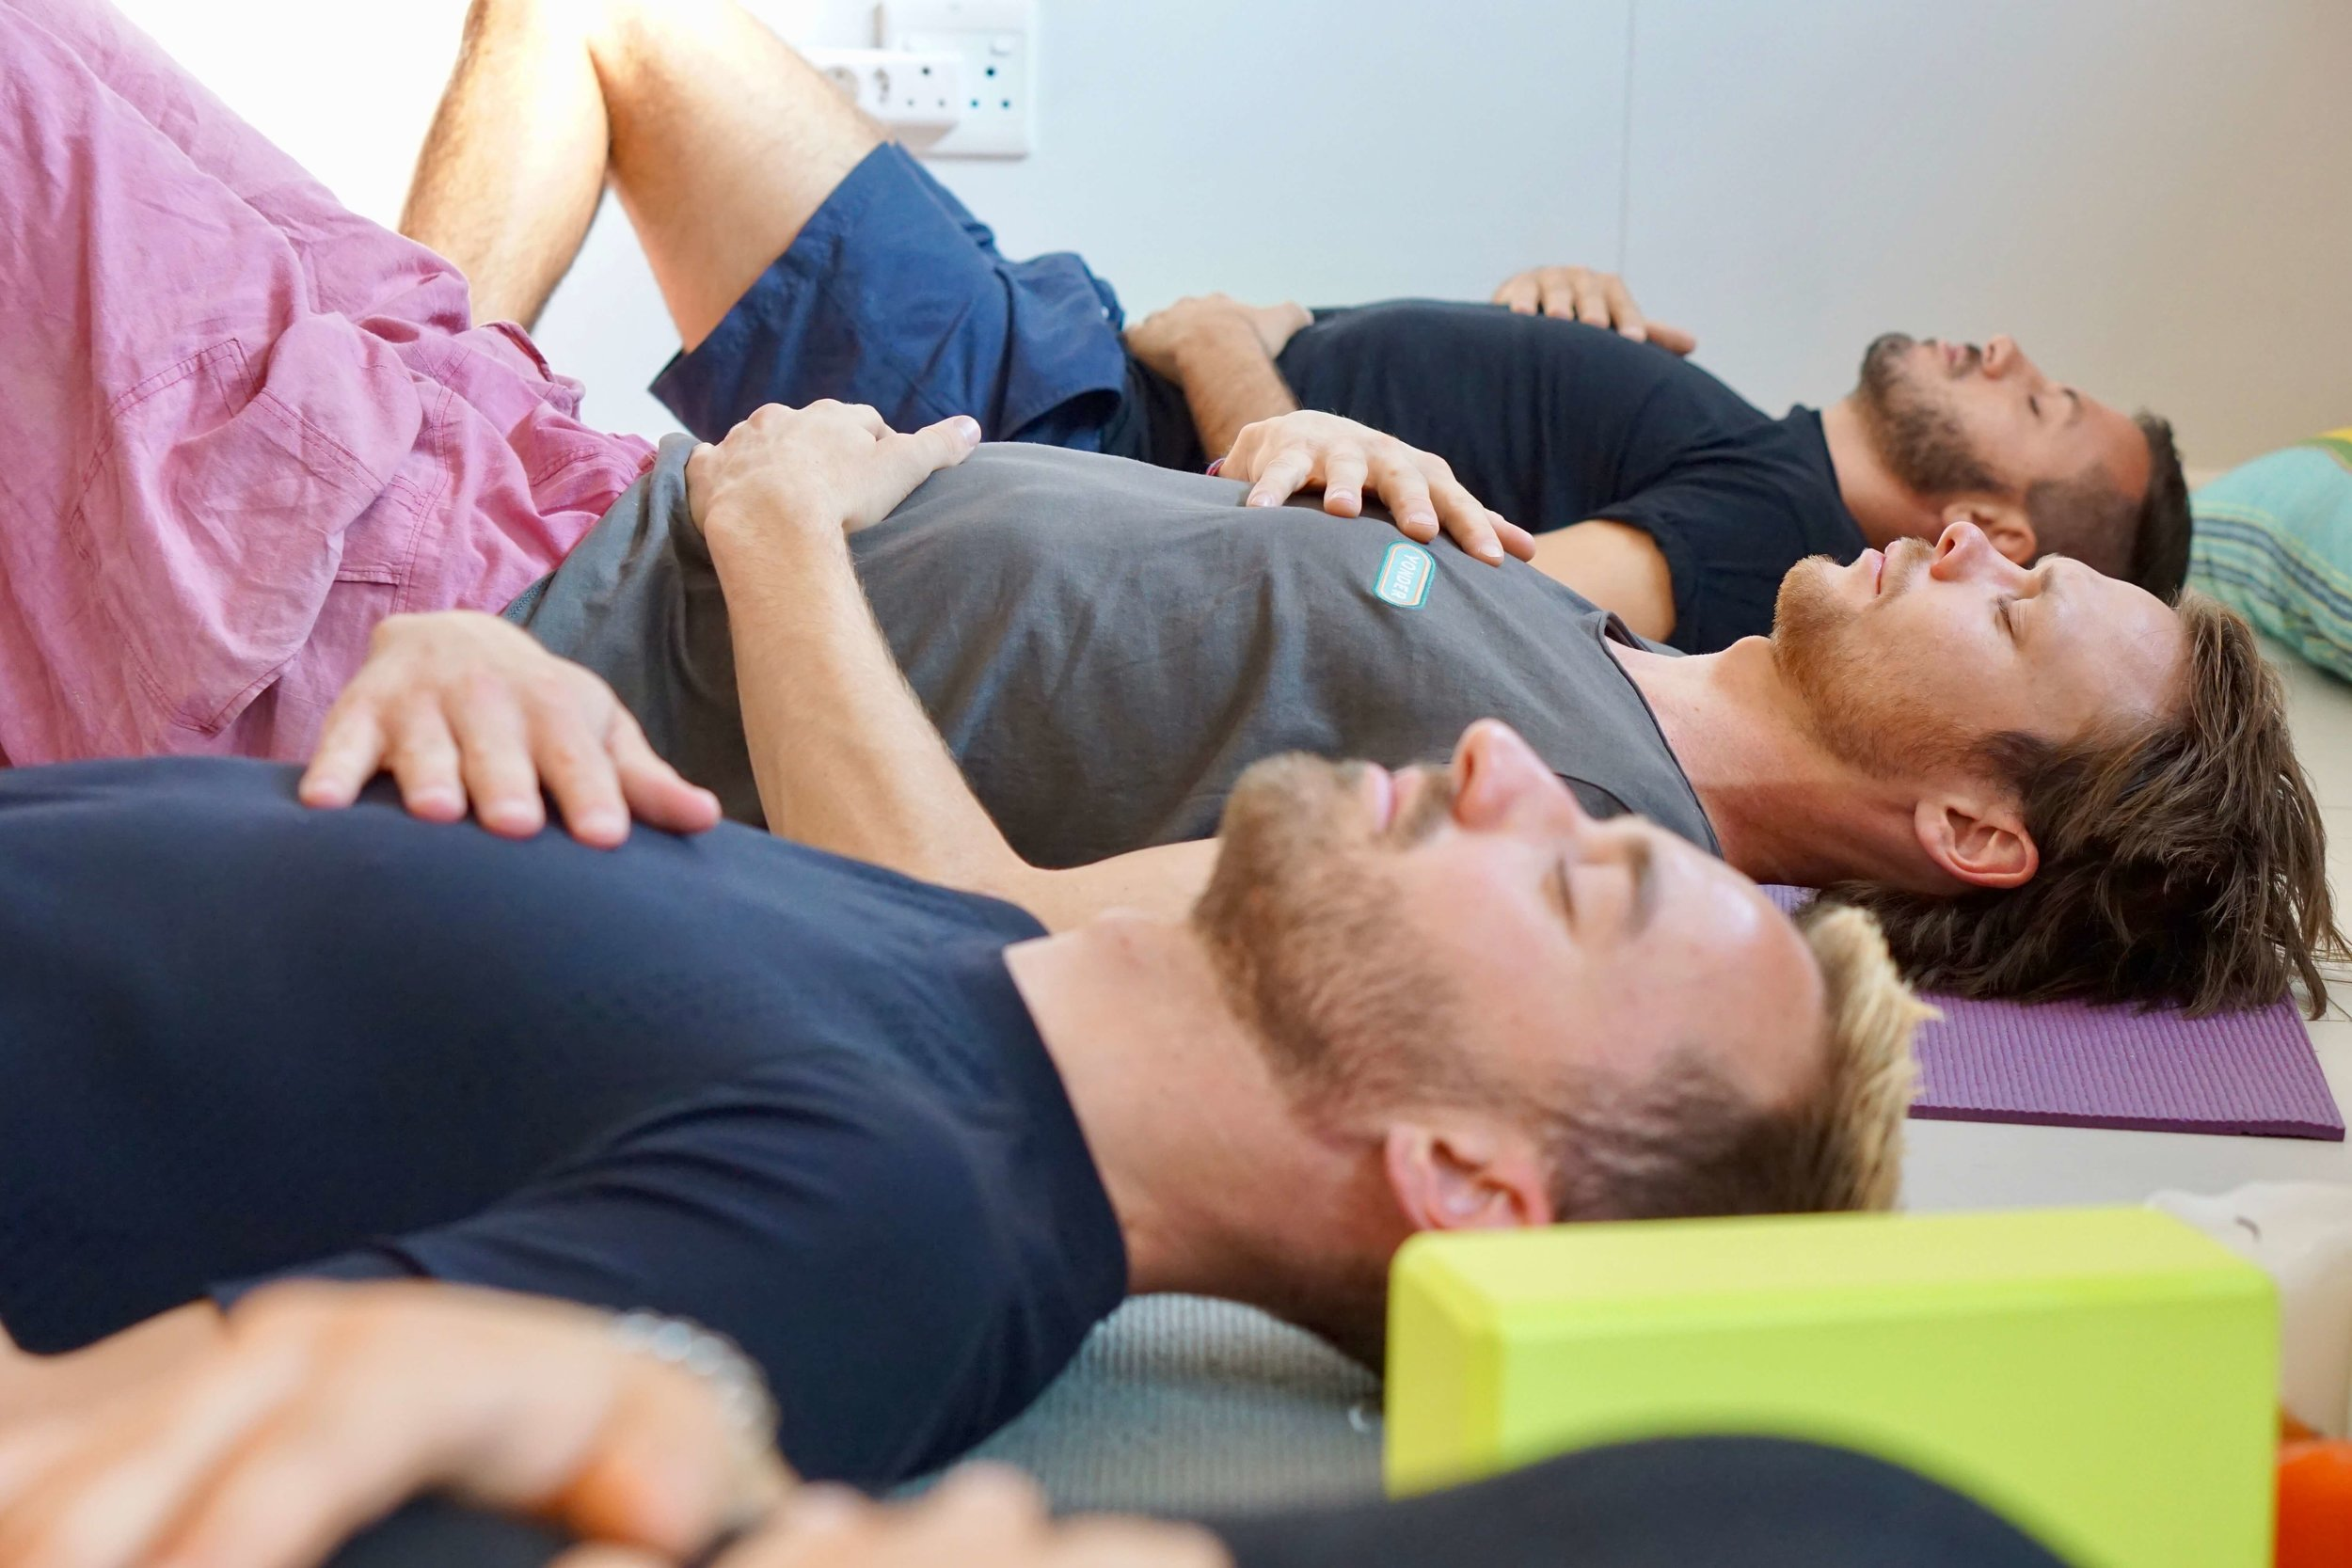 Our Africa tribe rose to the challenge of meditating regularly for 20mins.